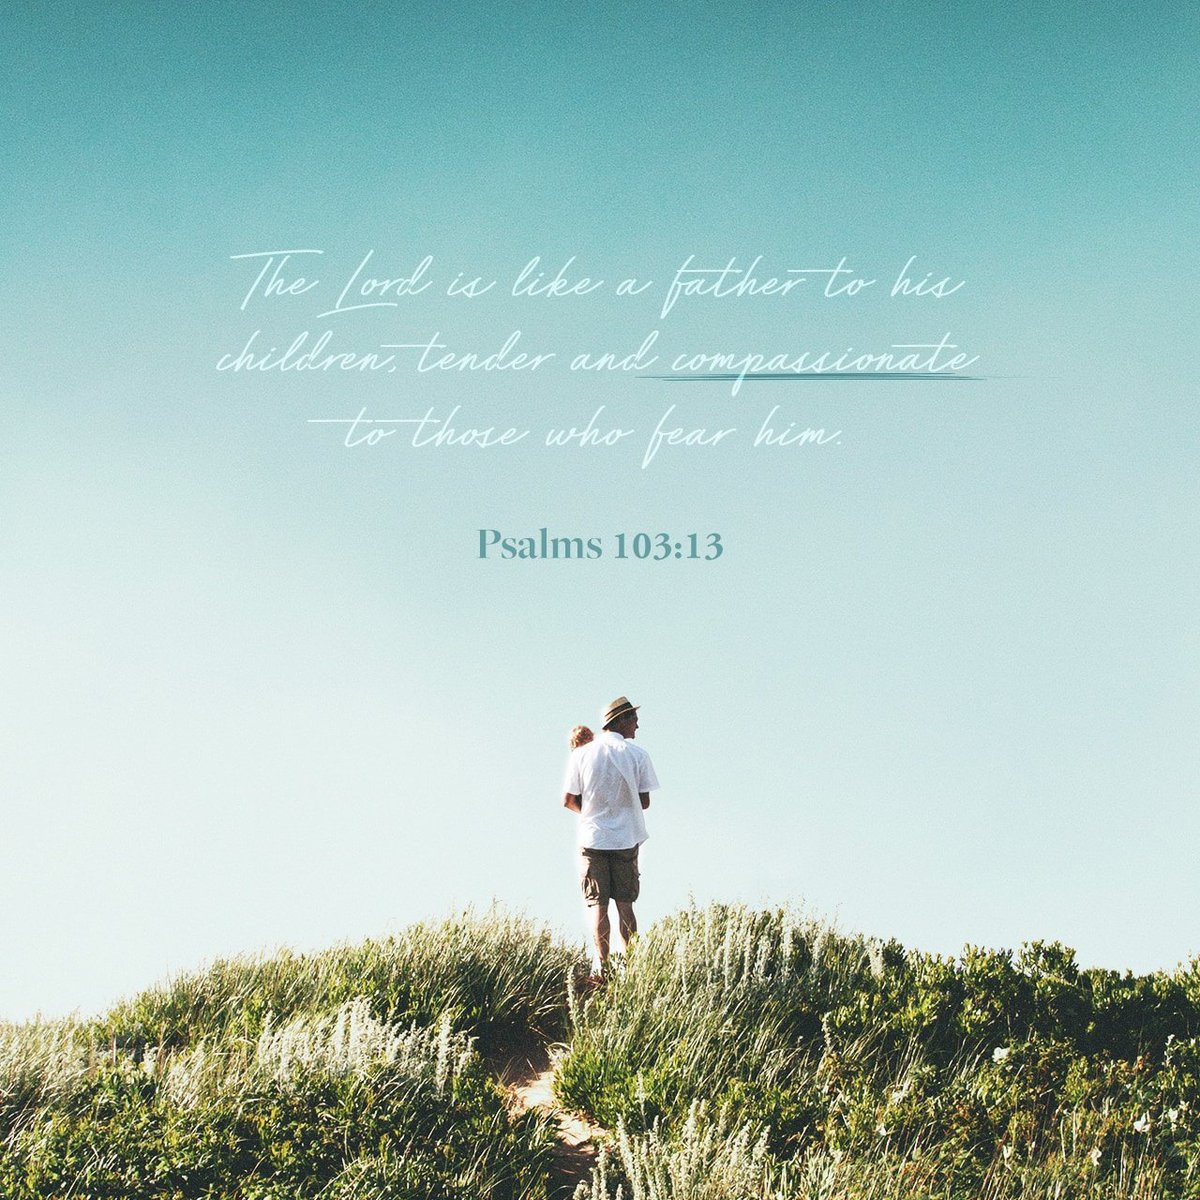 As a father pities his children, So the Lord pities those who fear Him. Psalms 103:13 N…  https:// bible.com/verse-of-the-d ay/psa.103.13/34735  … <br>http://pic.twitter.com/654VqGRU1N